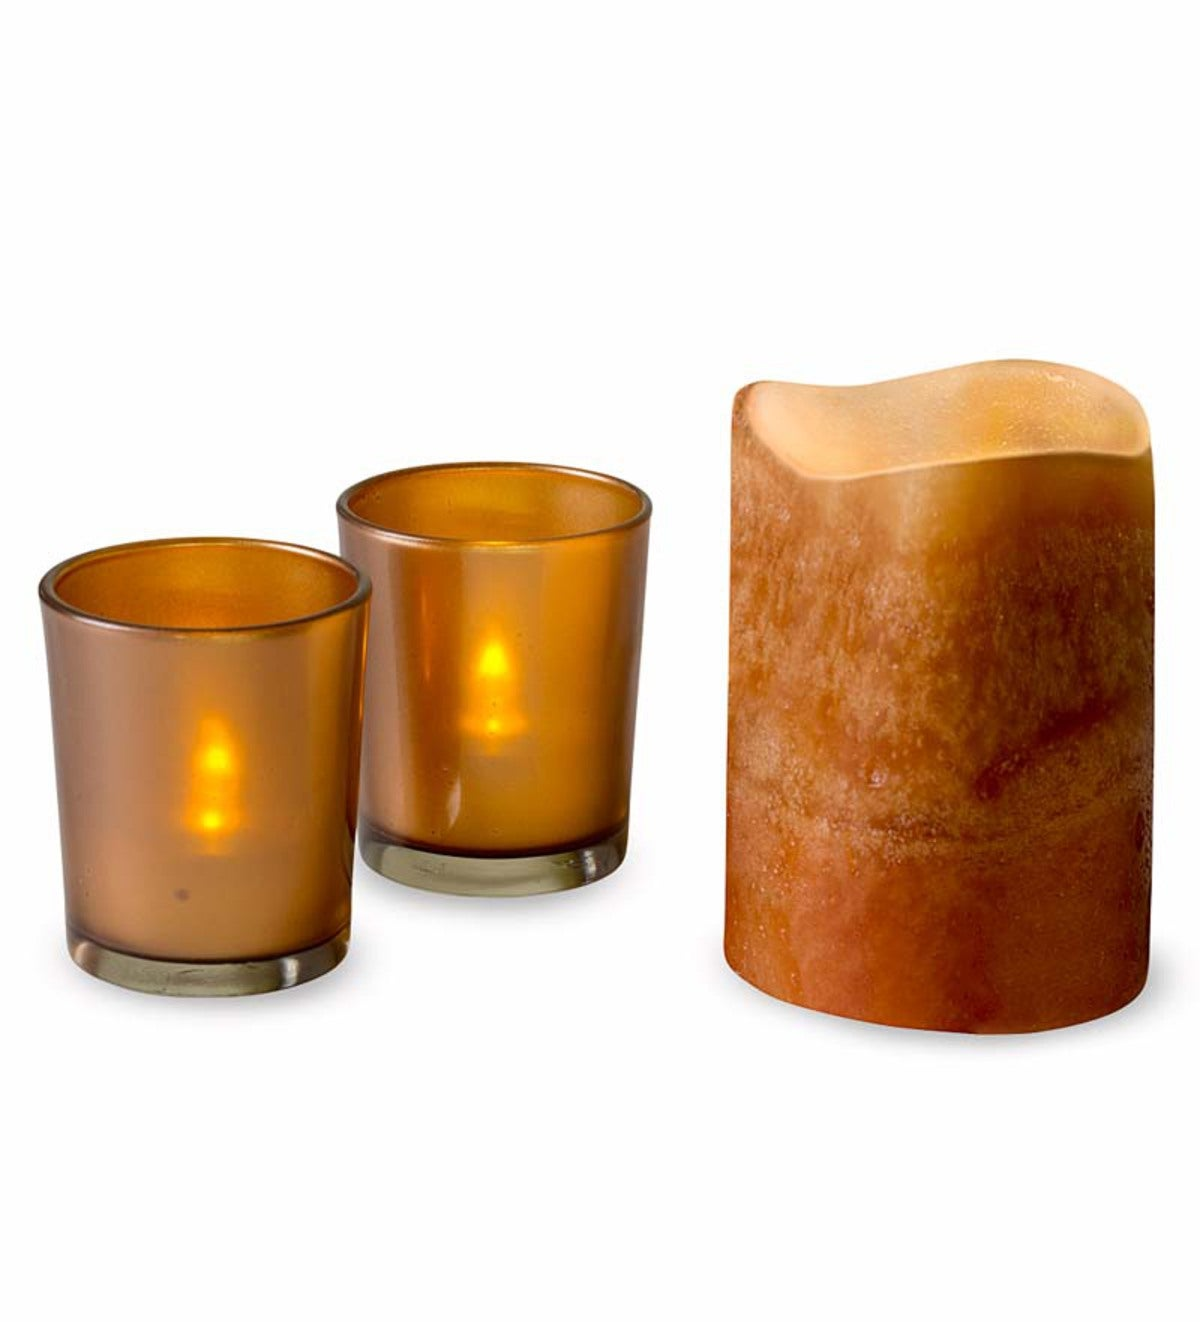 Flameless LED Pillar Candle Gift Set - Latte